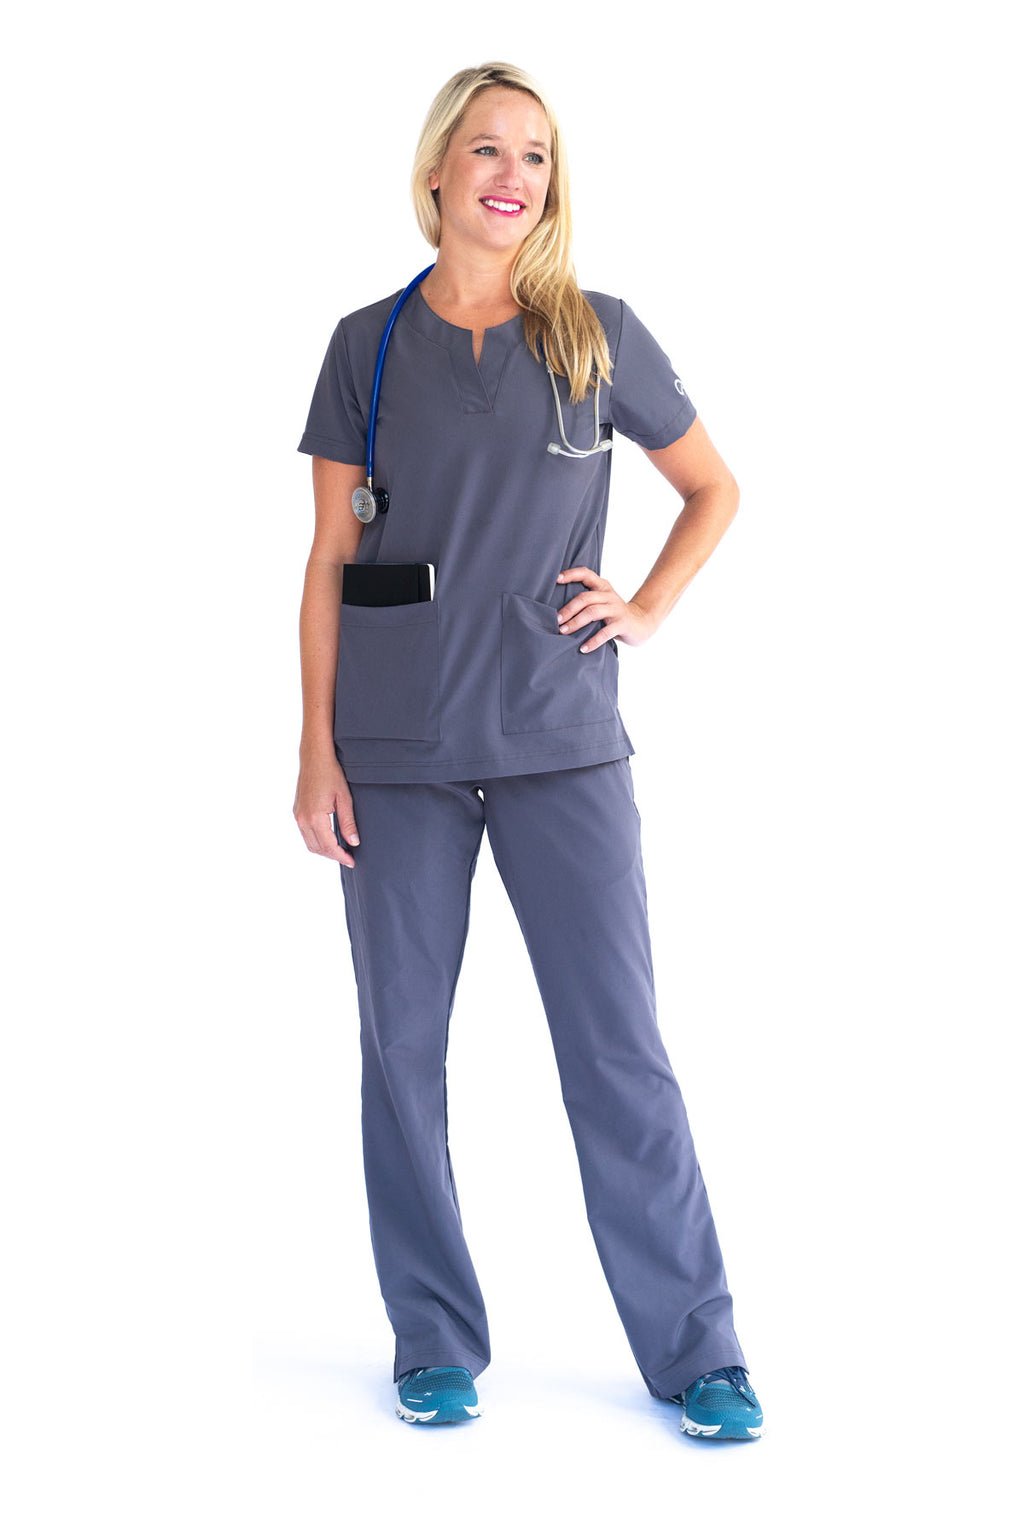 Cumberland Contemporary Scrub Top for Nurses